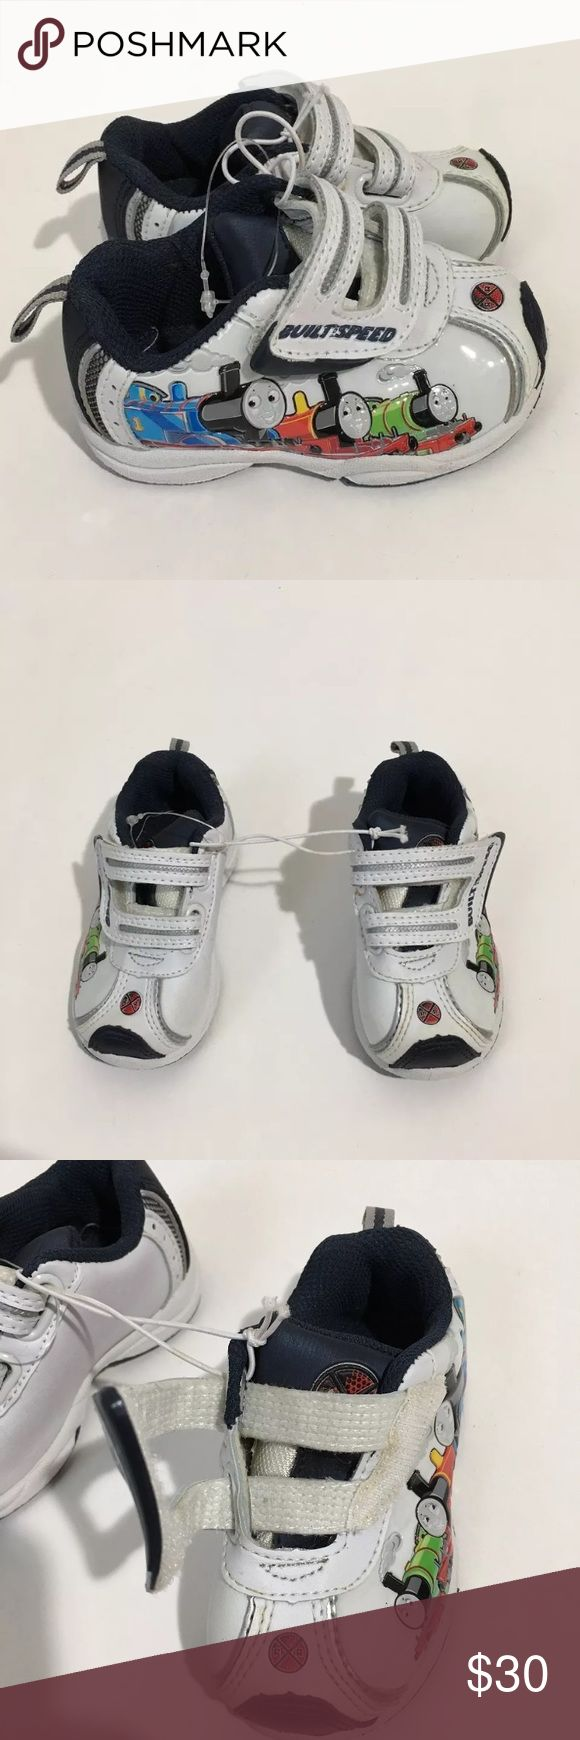 NWOT Thomas & Friends Train White Sneakers Toddler New without tags Boy's Thomas & Friends train sneakers with hook and loop fastener. Toddler Size 4 Brand New Never Worn Without Box Thomas & Friends Shoes Sneakers